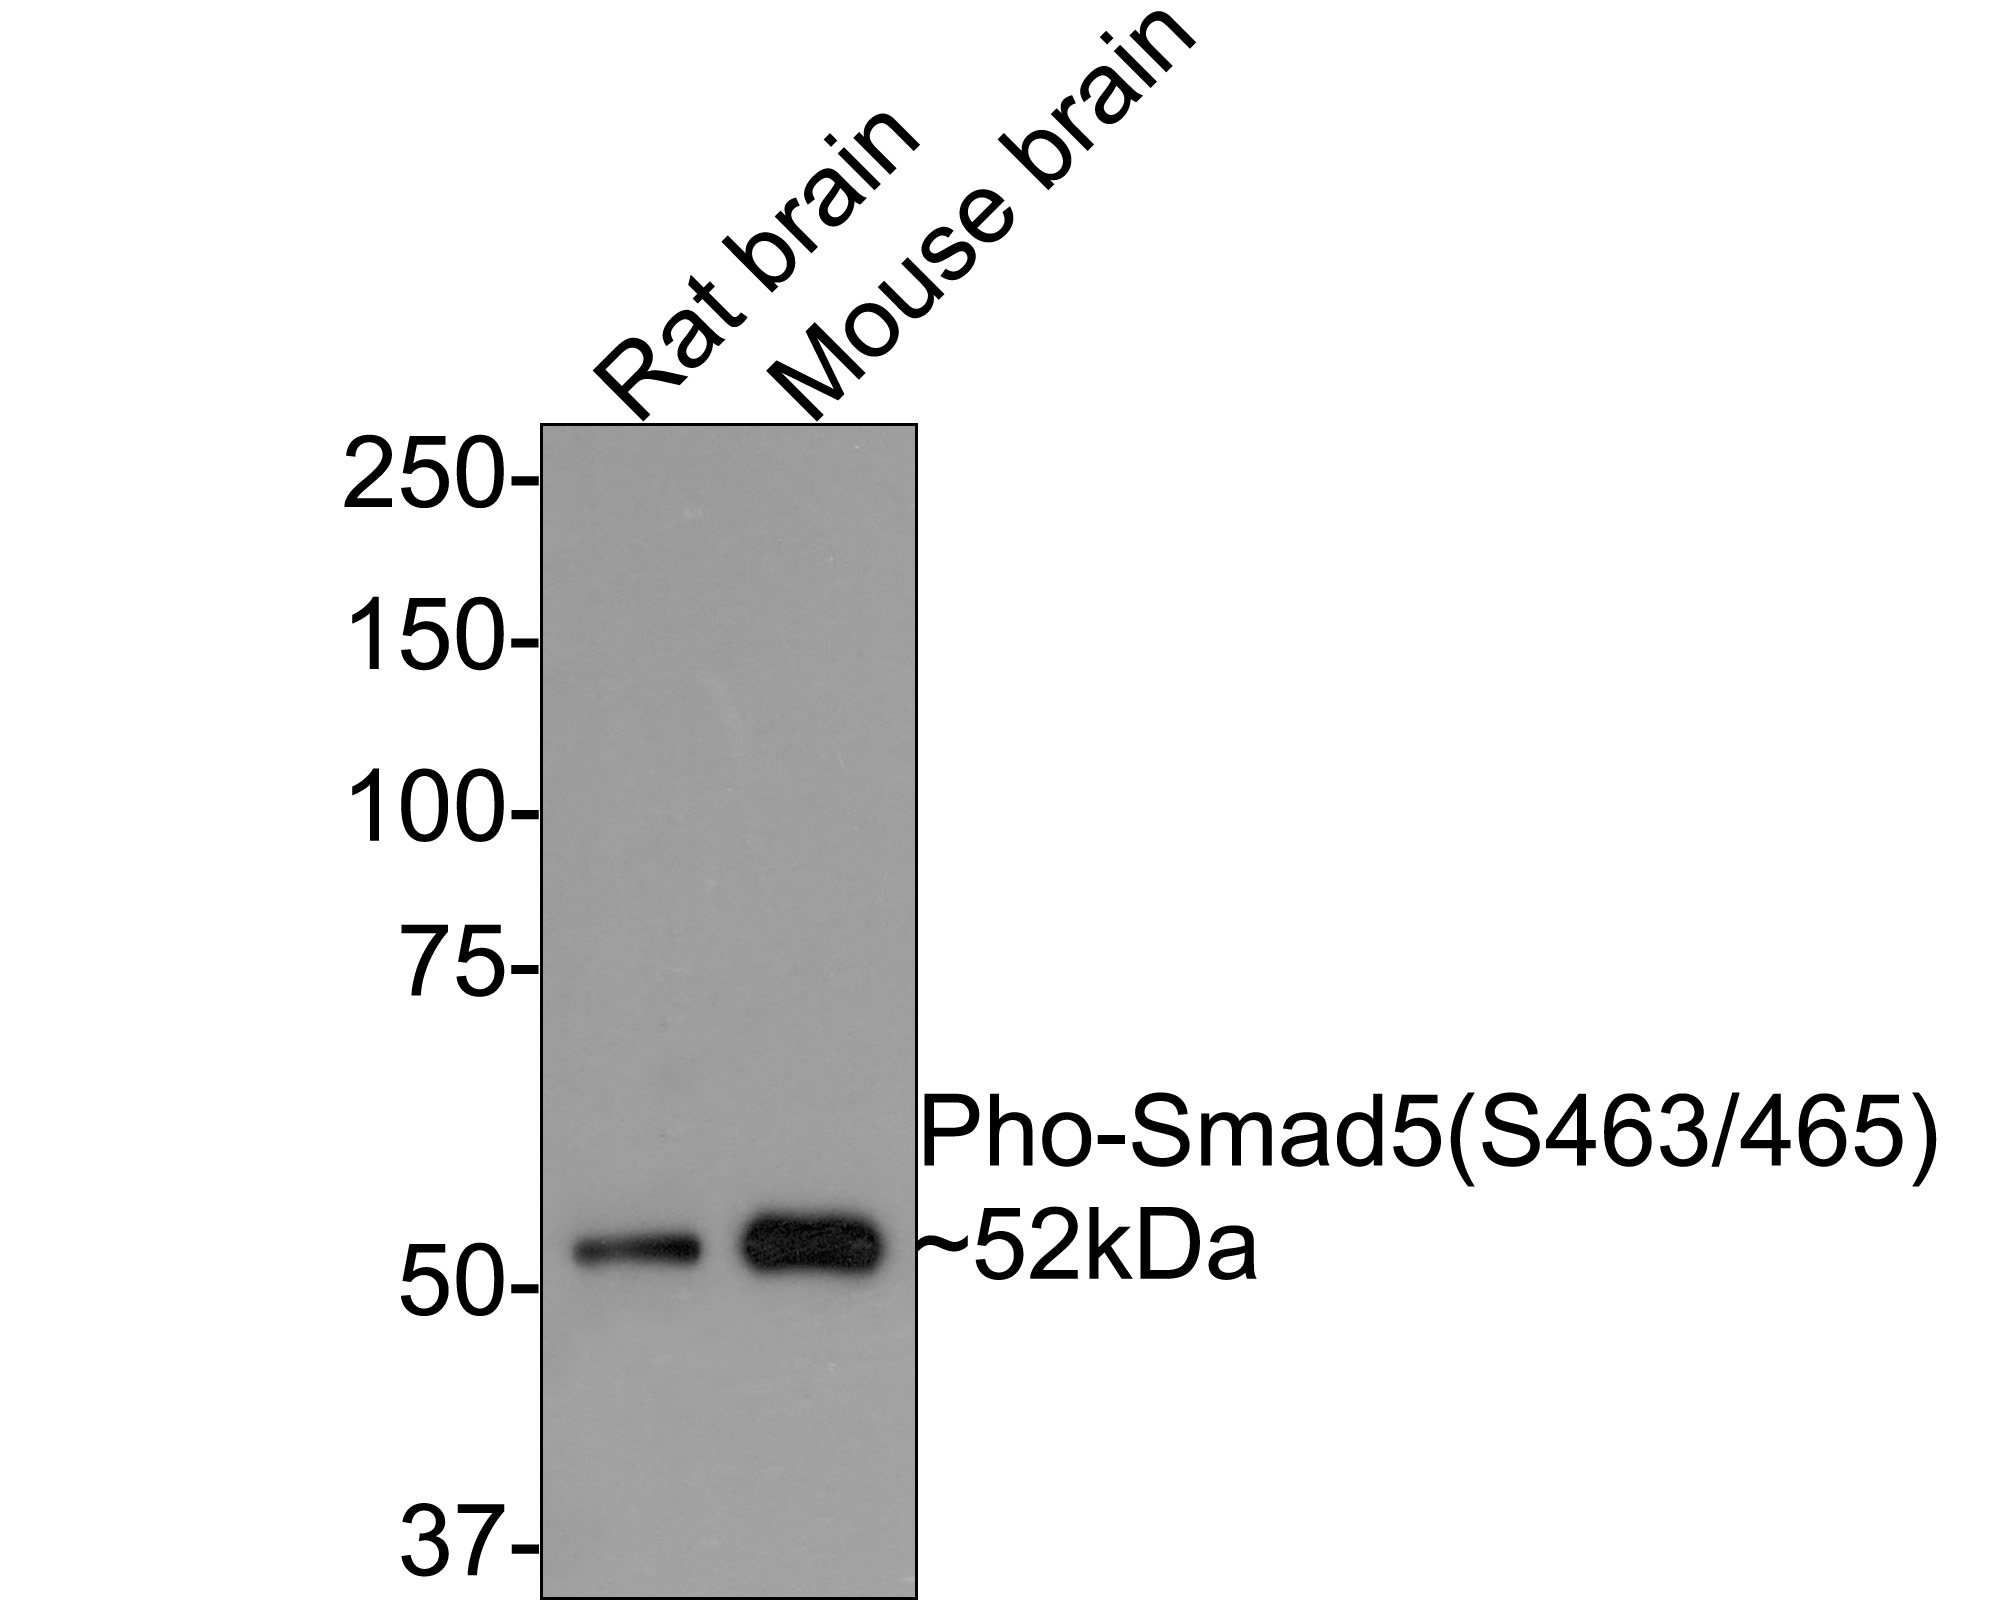 Western blot analysis of Phospho-Smad5(S463/465) on different lysates. Proteins were transferred to a PVDF membrane and blocked with 5% BSA in PBS for 1 hour at room temperature. The primary antibody (ET1605-5, 1/500) was used in 5% BSA at room temperature for 2 hours. Goat Anti-Rabbit IgG - HRP Secondary Antibody (HA1001) at 1:5,000 dilution was used for 1 hour at room temperature.<br />  Positive control: <br />  Lane 1: mouse brain tissue lysate<br />  Lane 2: rat brain tissue lysate